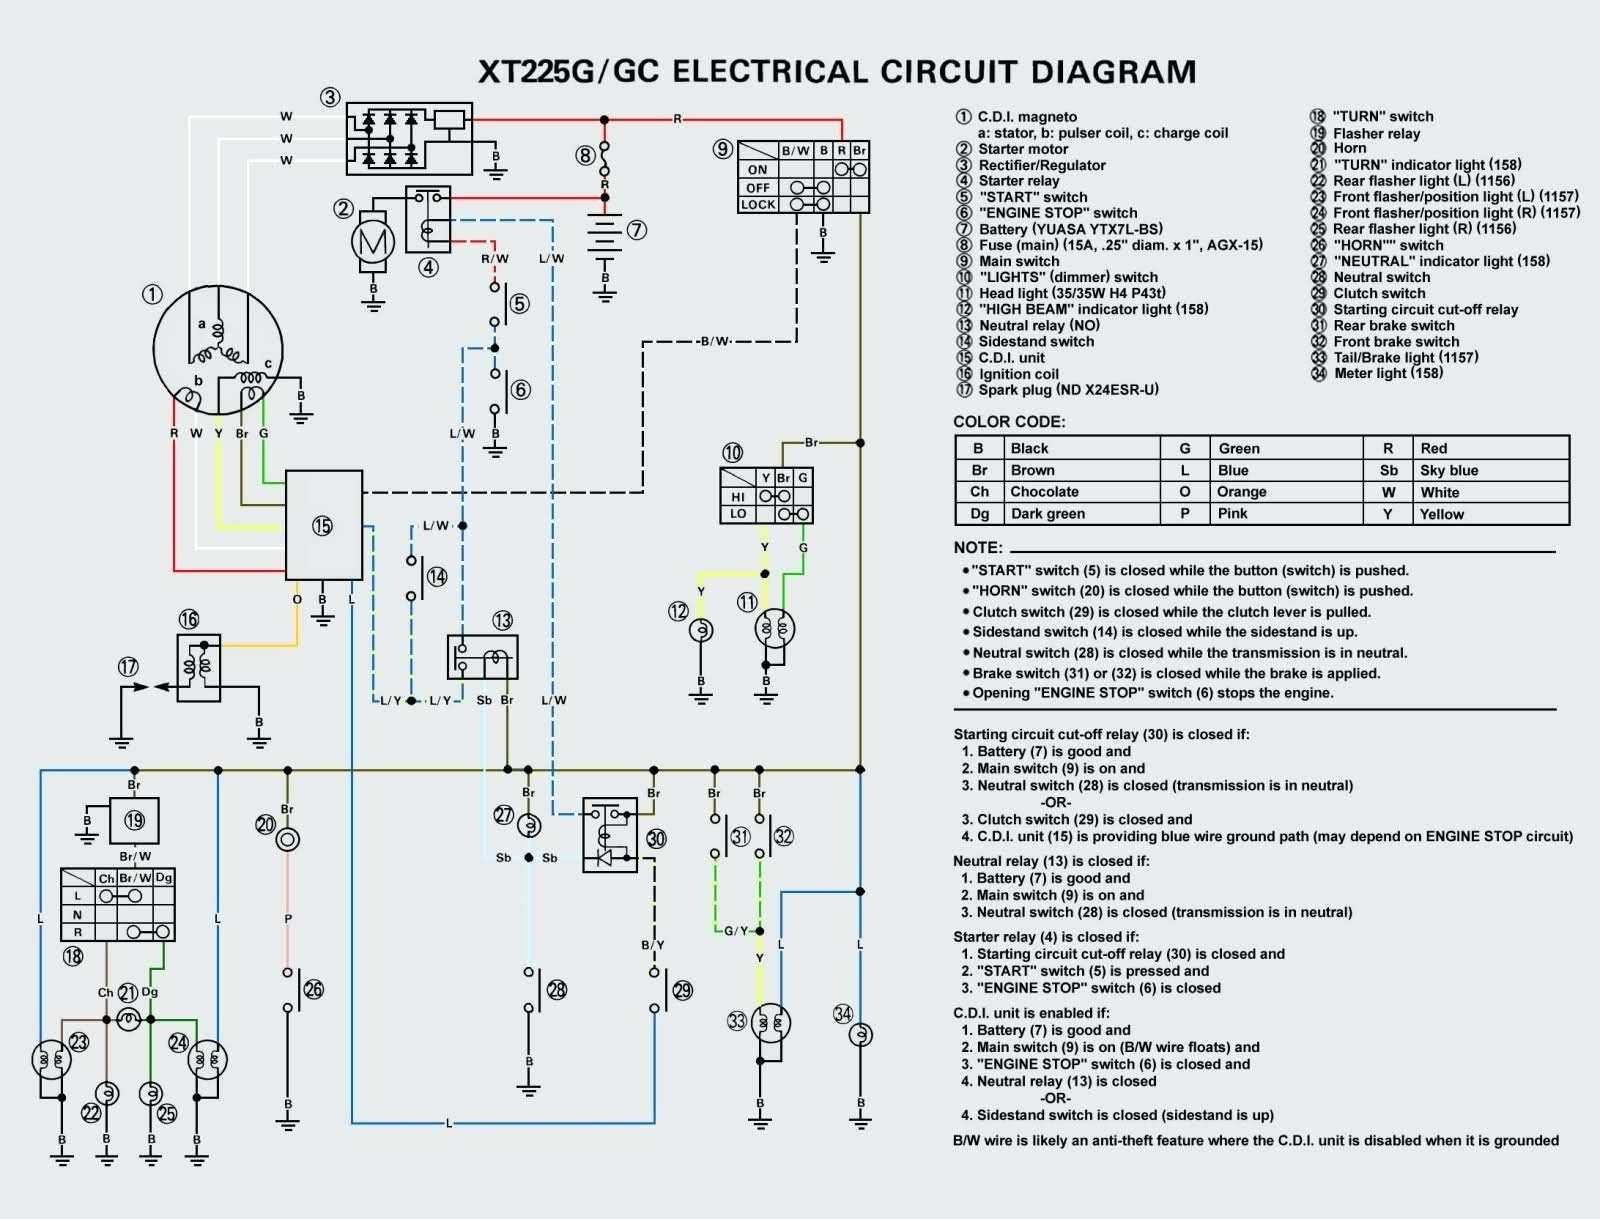 hight resolution of yamaha xt 550 wiring diagram wiring diagram technic yamaha xt 125 wiring diagram